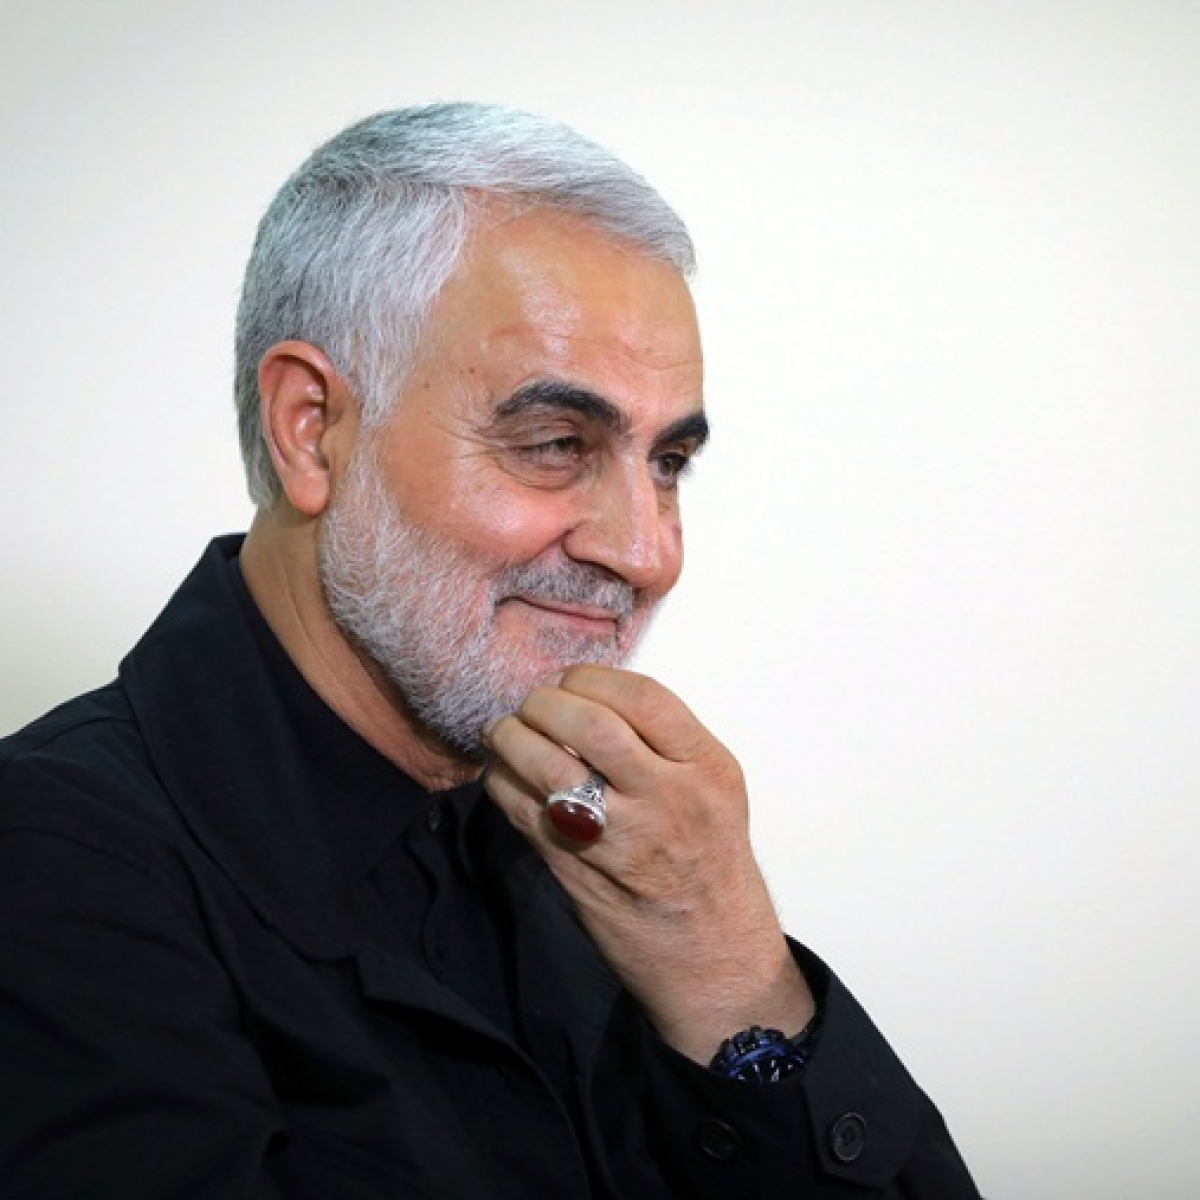 'We are near you': Video of Soleimani threatening Trump goes viral after US airstrike